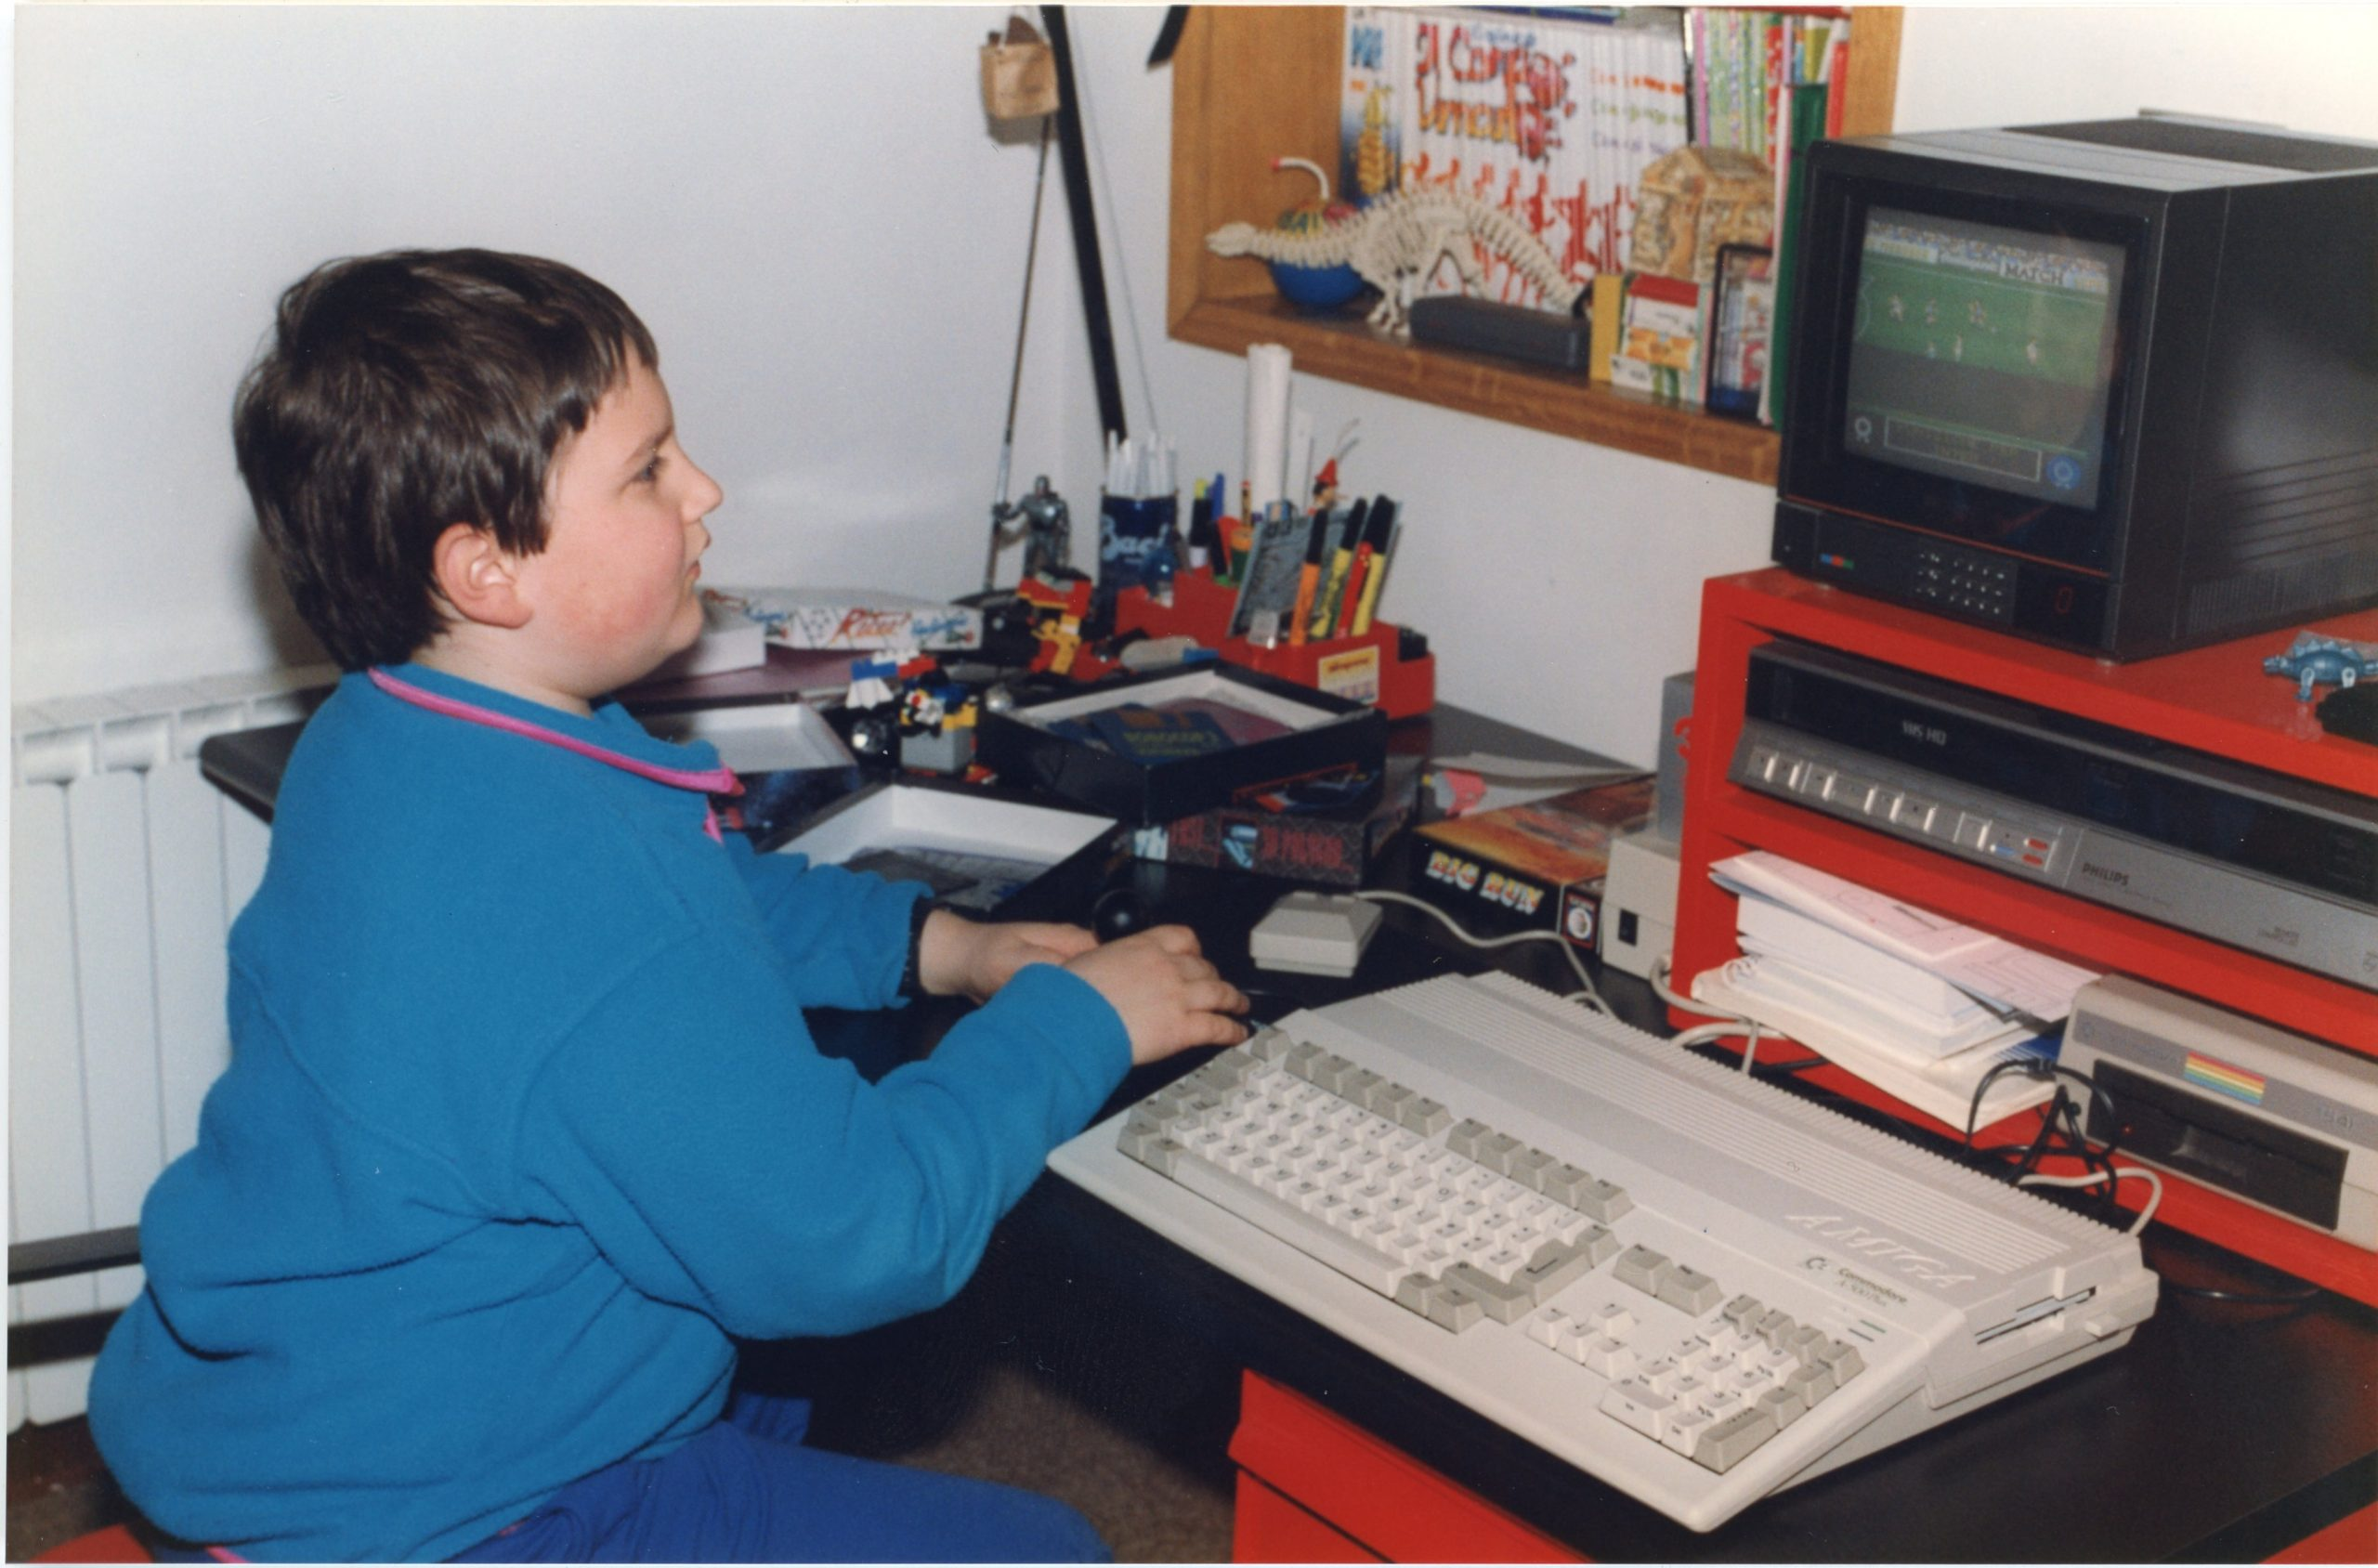 Marco Cosatto Commodore Amiga 500 Plus